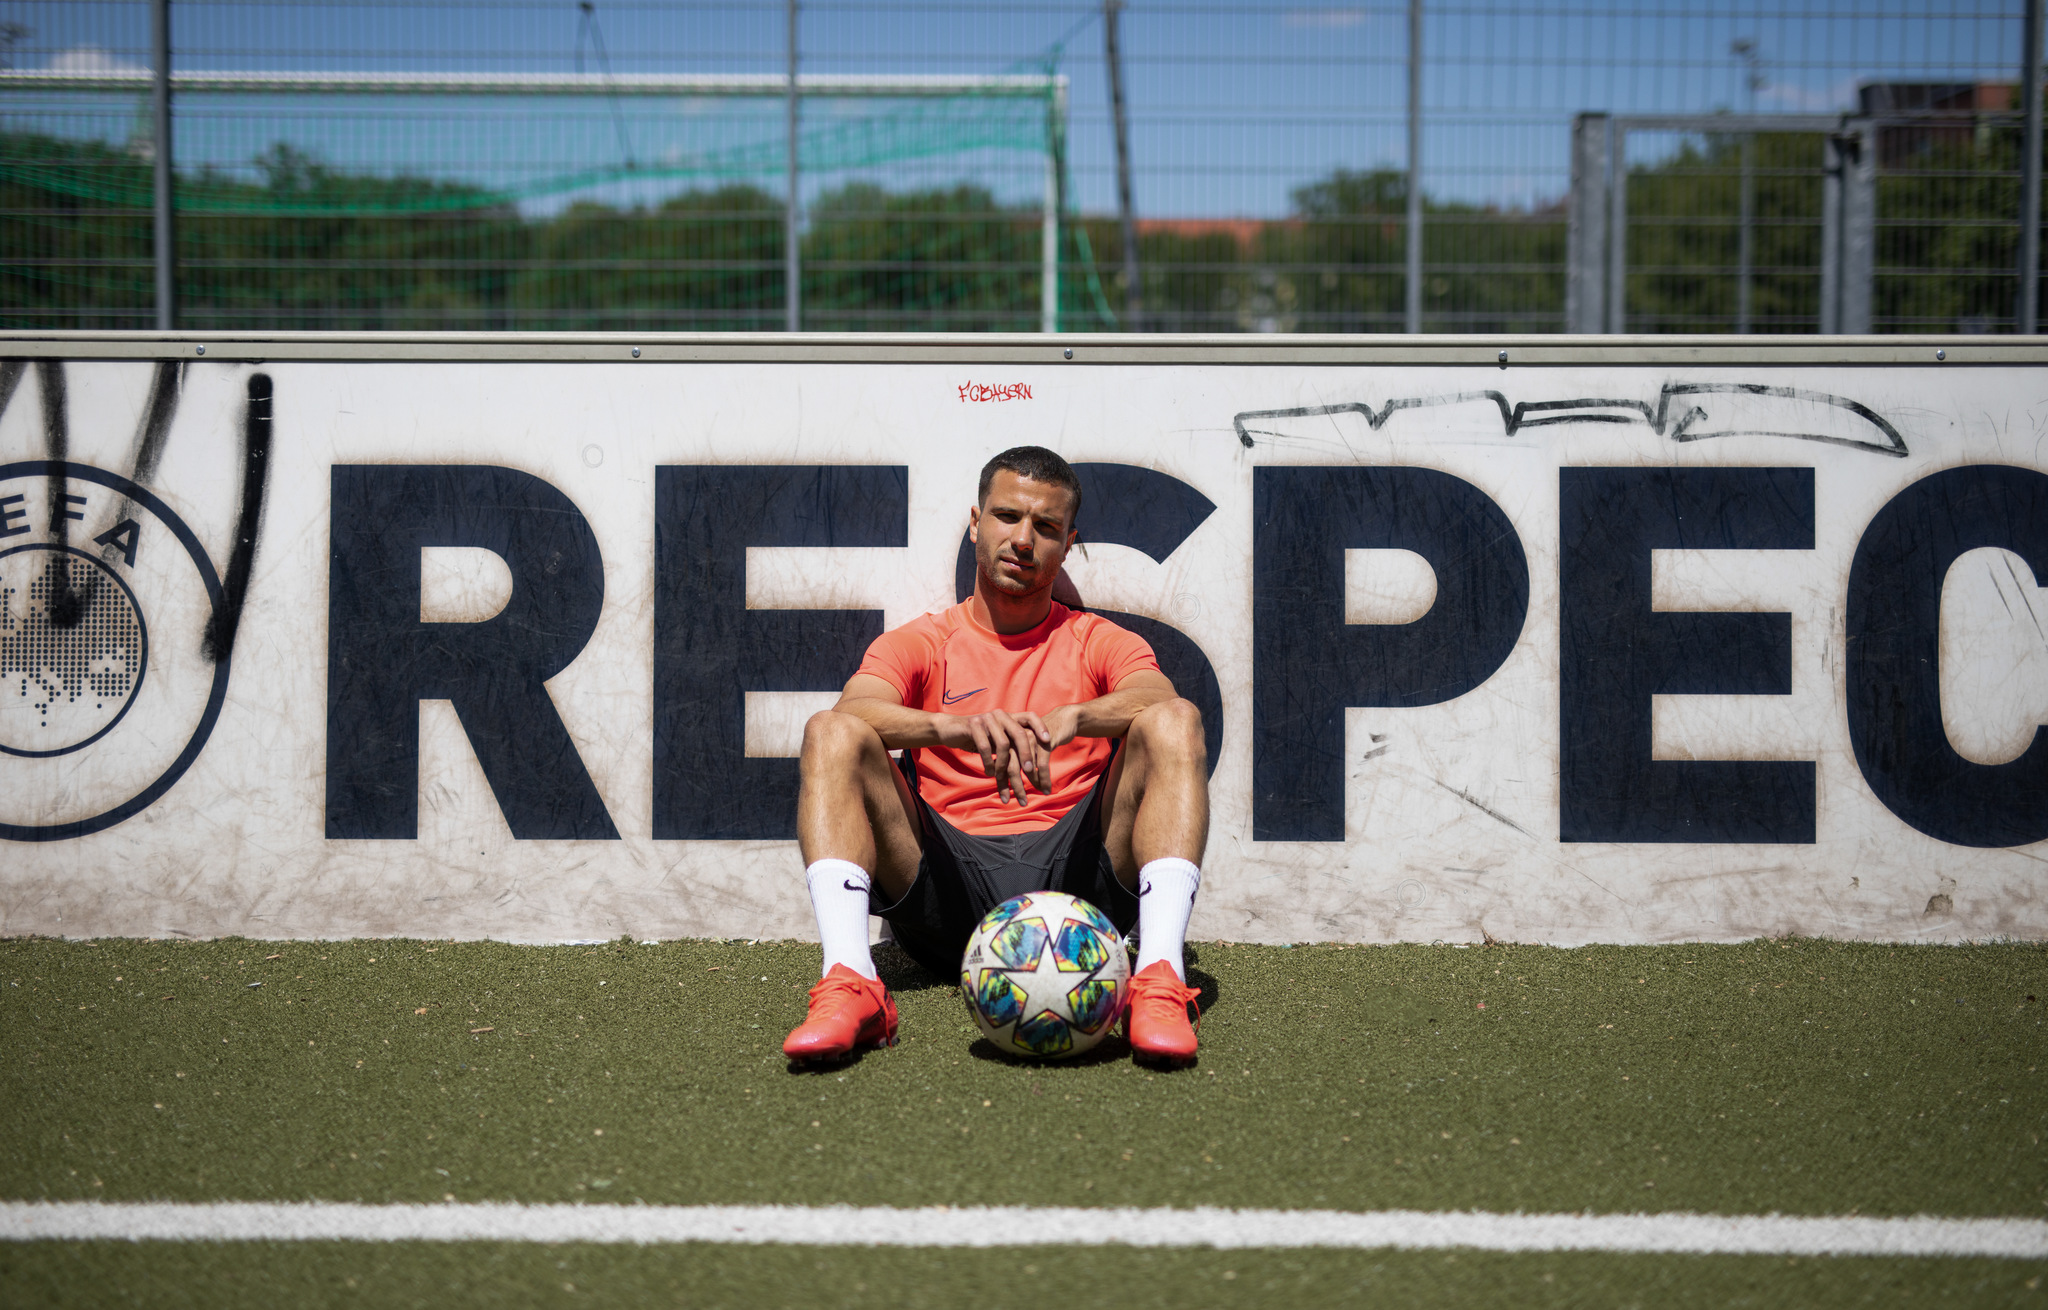 commercial-nike-football-photography-muenchen-07